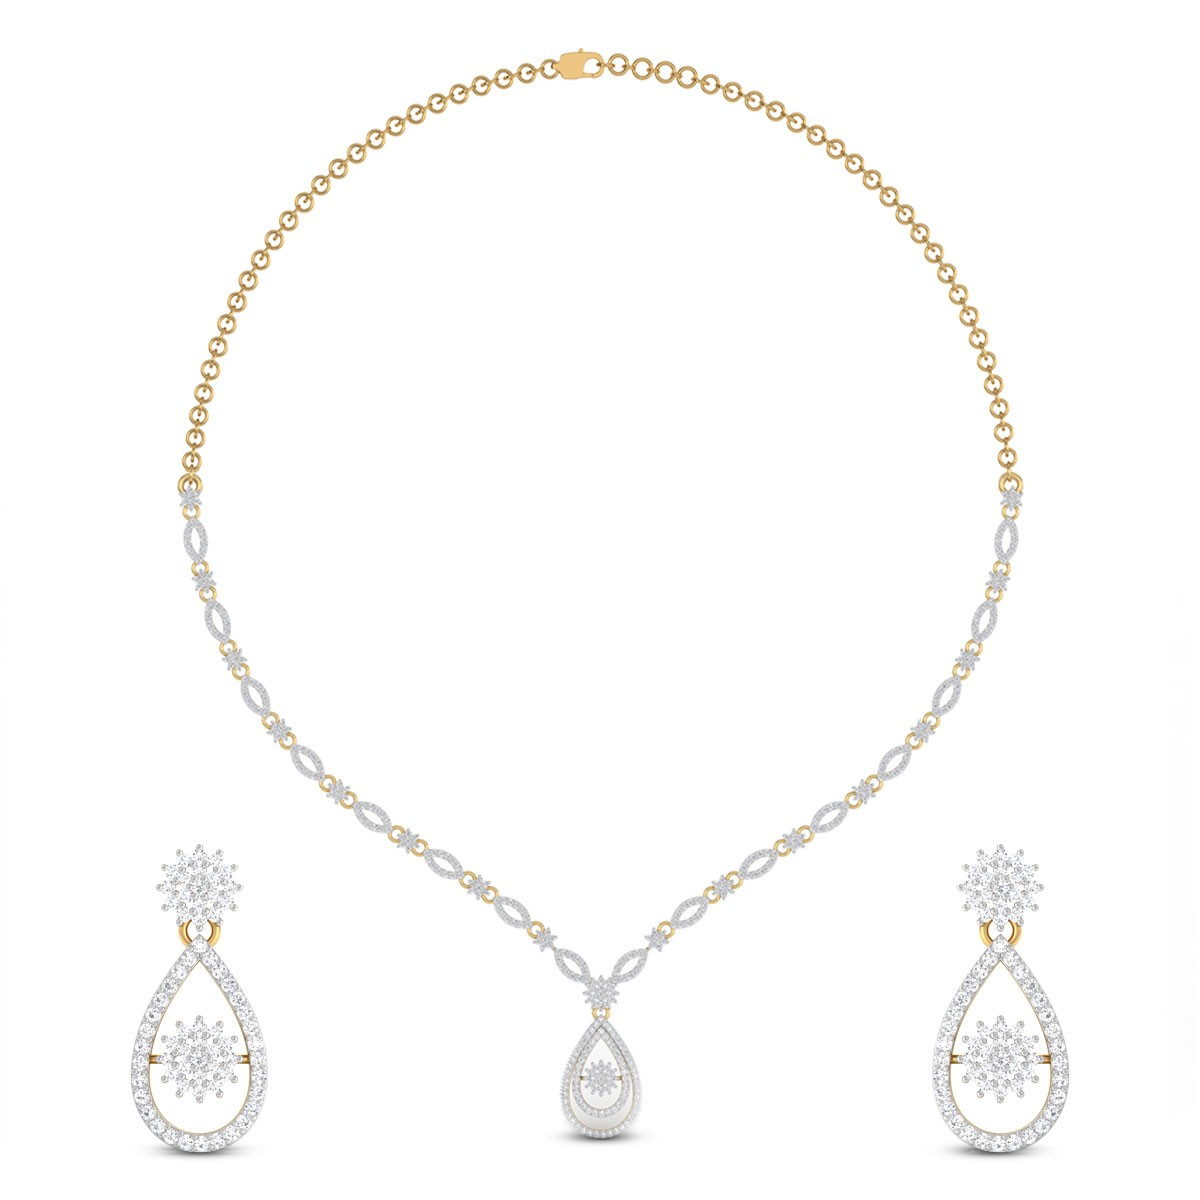 Rayna Floral Diamond Necklace Set